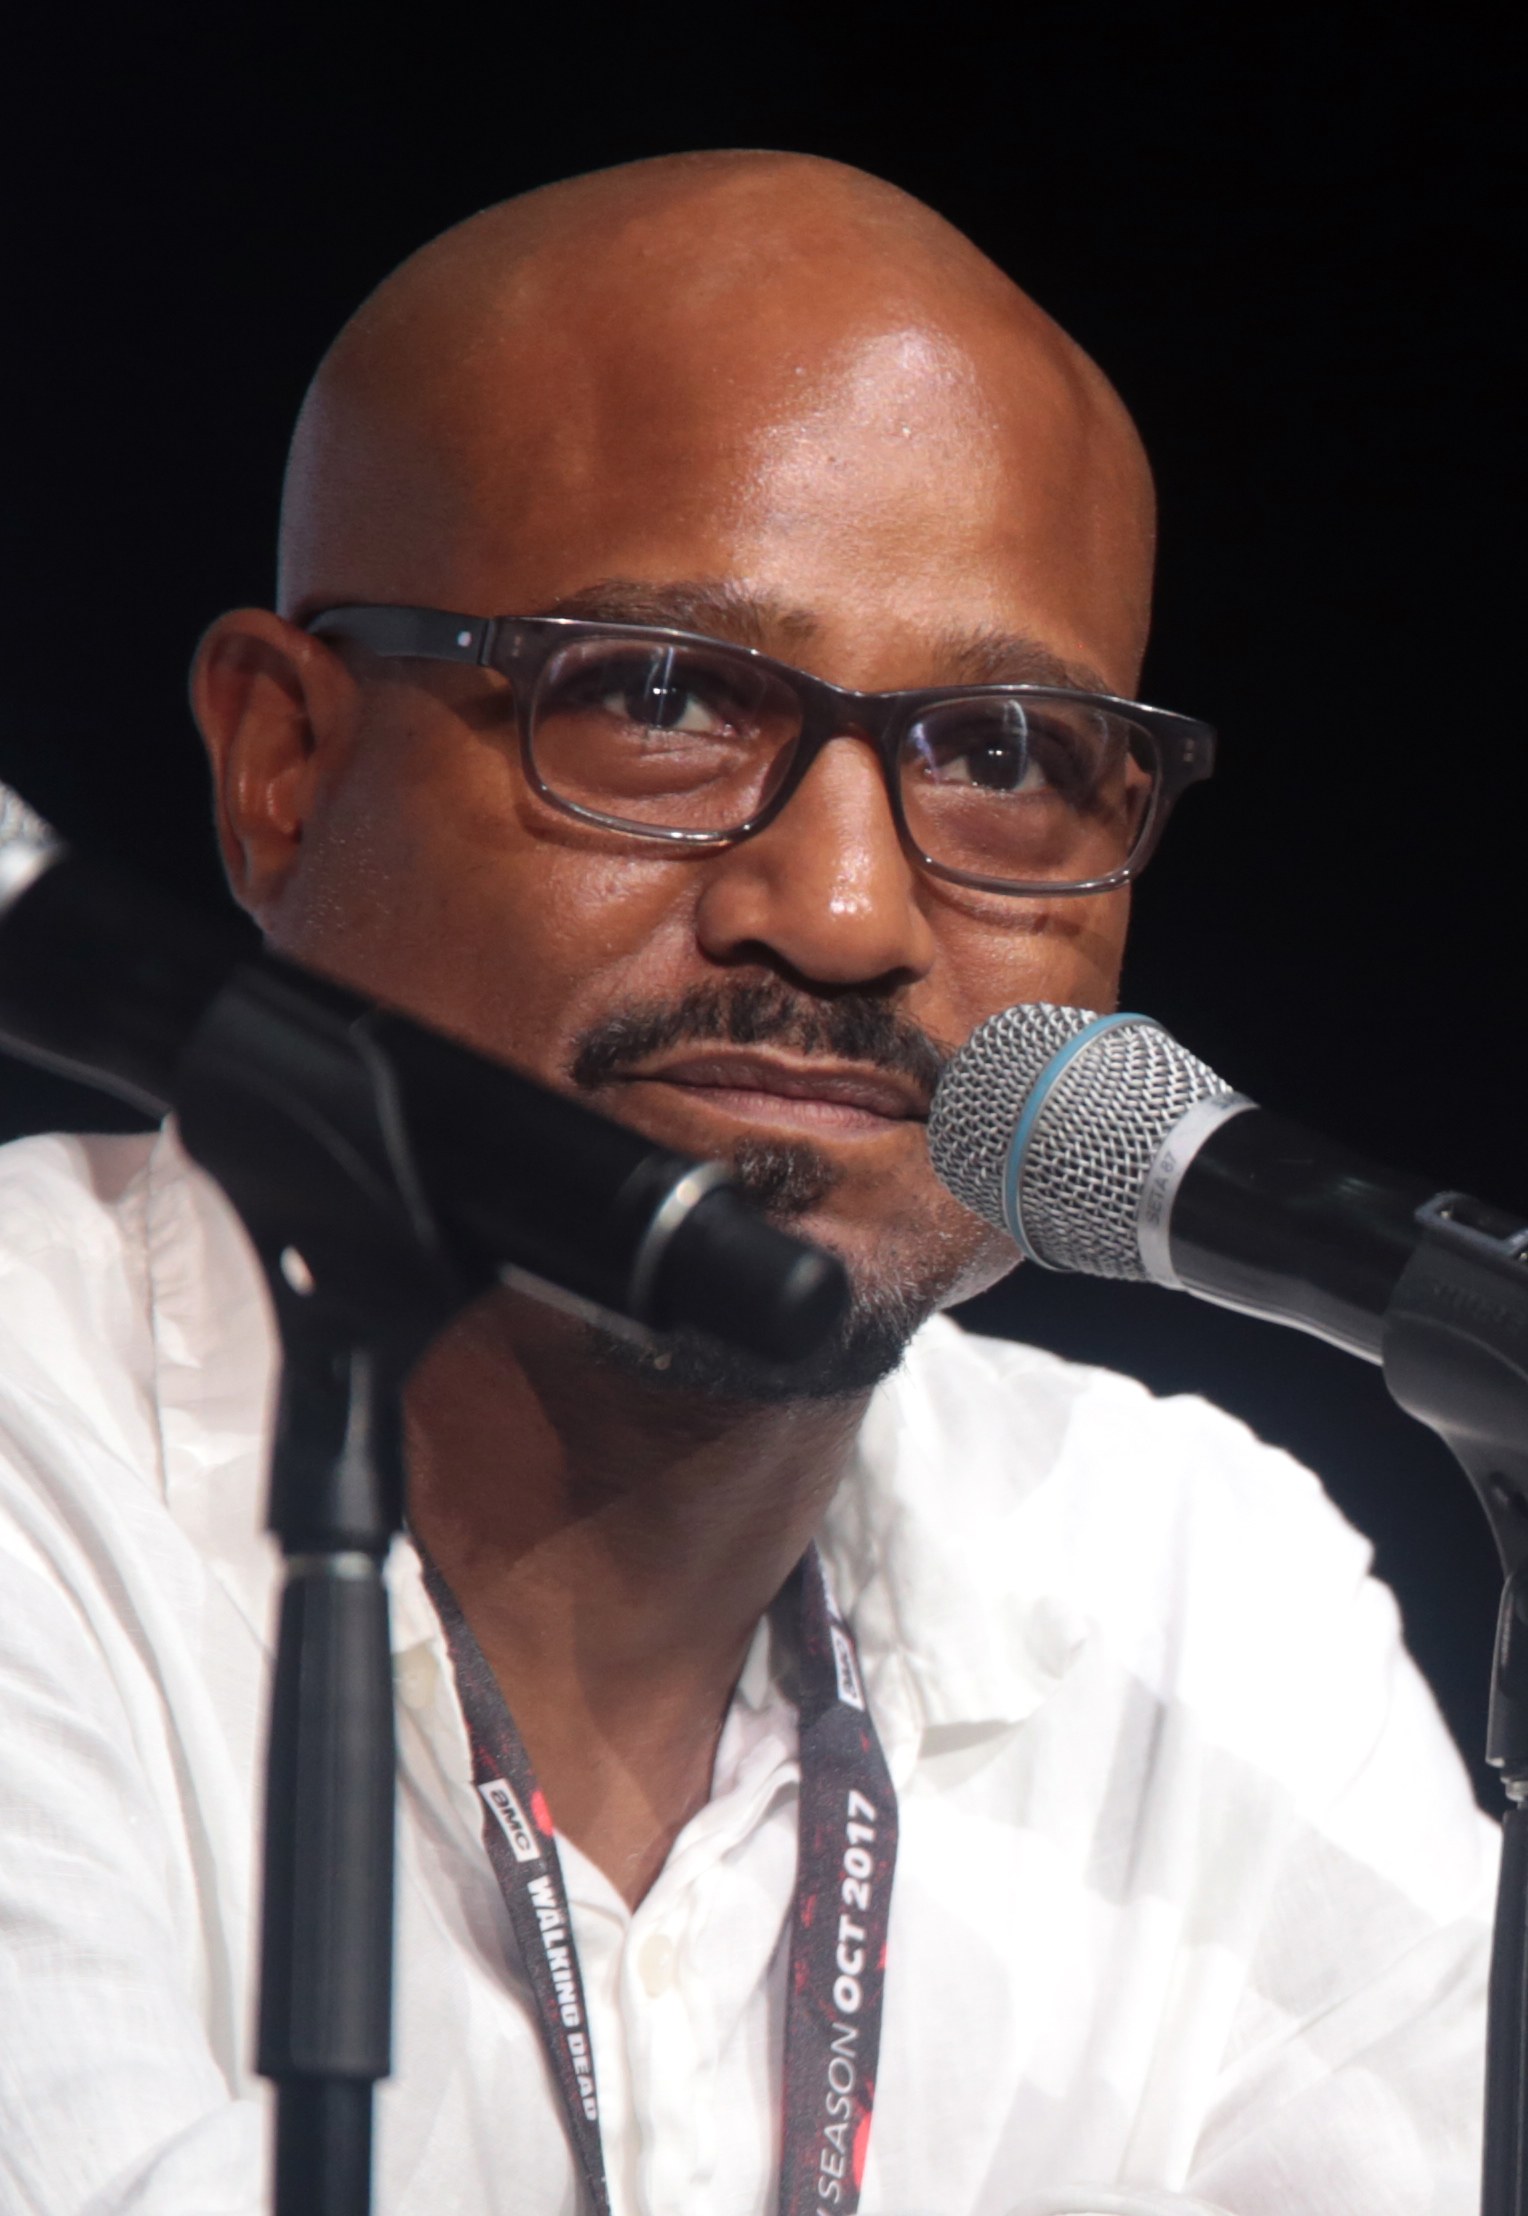 The 49-year old son of father (?) and mother(?) Seth Gilliam in 2018 photo. Seth Gilliam earned a  million dollar salary - leaving the net worth at 1.5 million in 2018